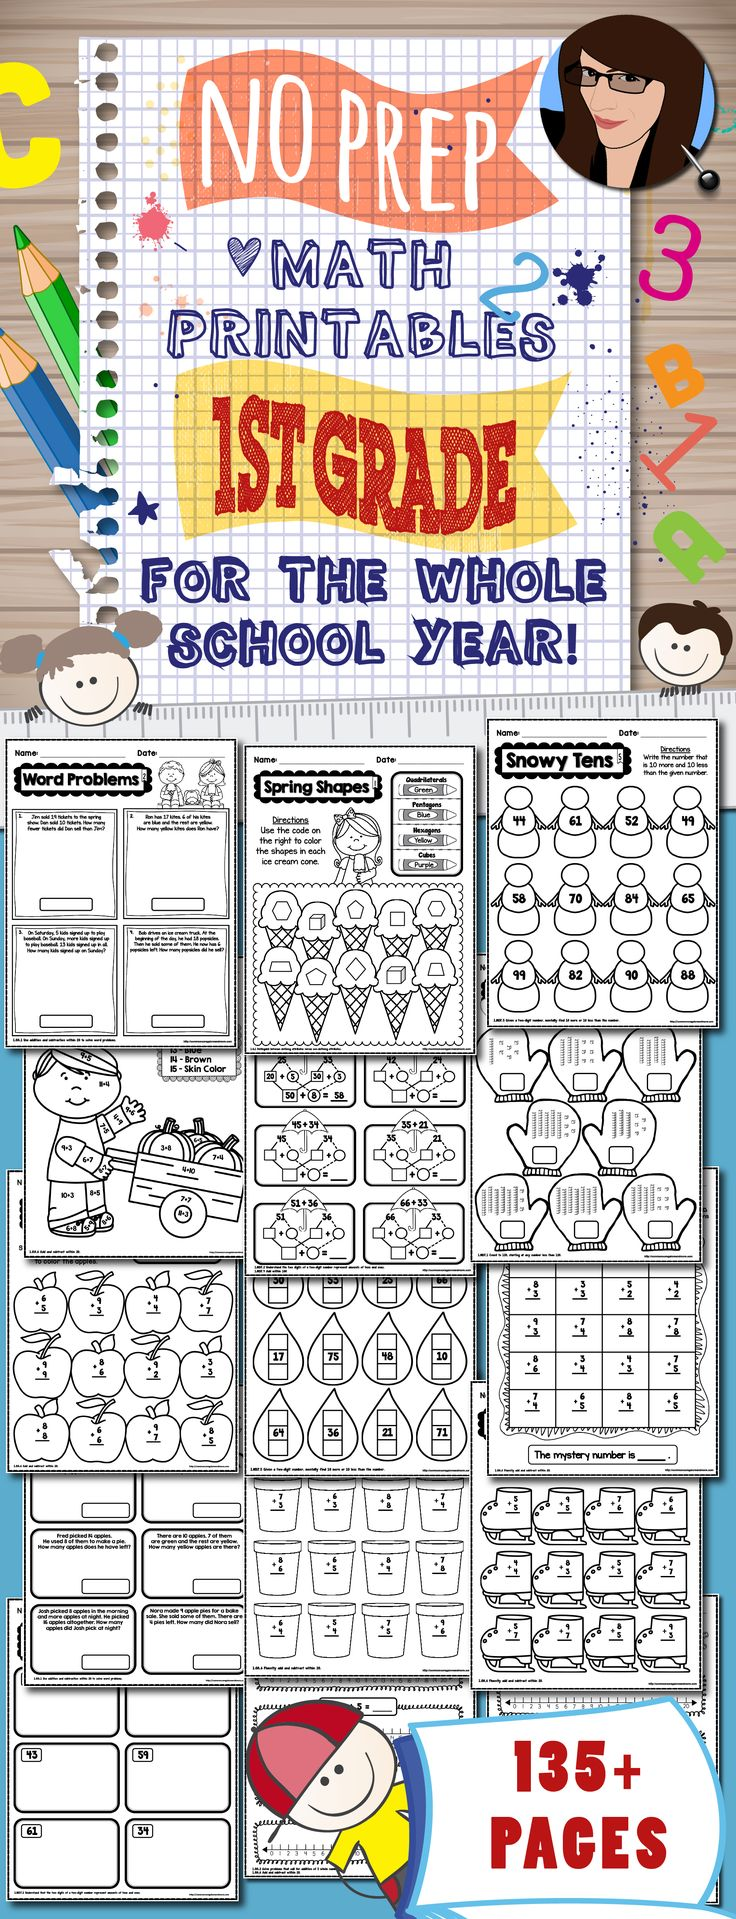 No Prep Math Printables for the Whole School Year - 1st Grade (135+ pages)